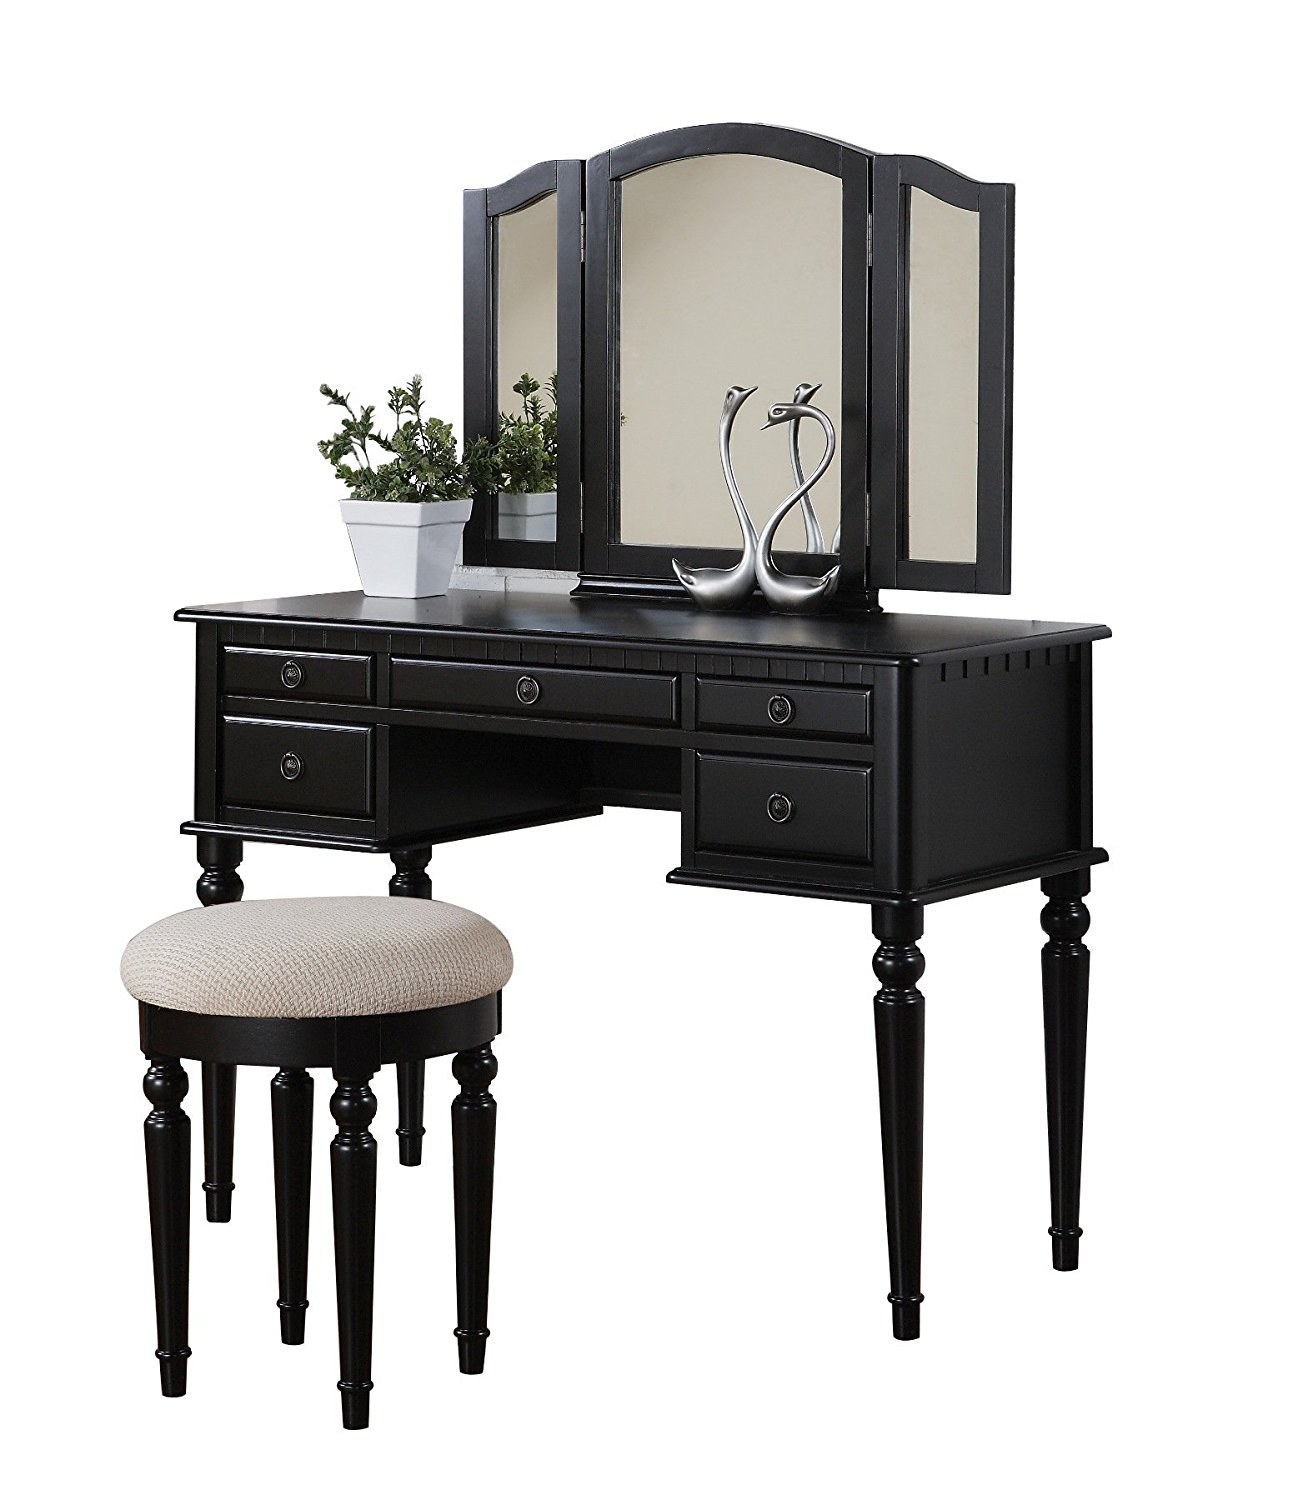 Lighted Vanity Makeup Mirror Table : Makeup Vanity Table With Lighted Mirror - Decor IdeasDecor Ideas